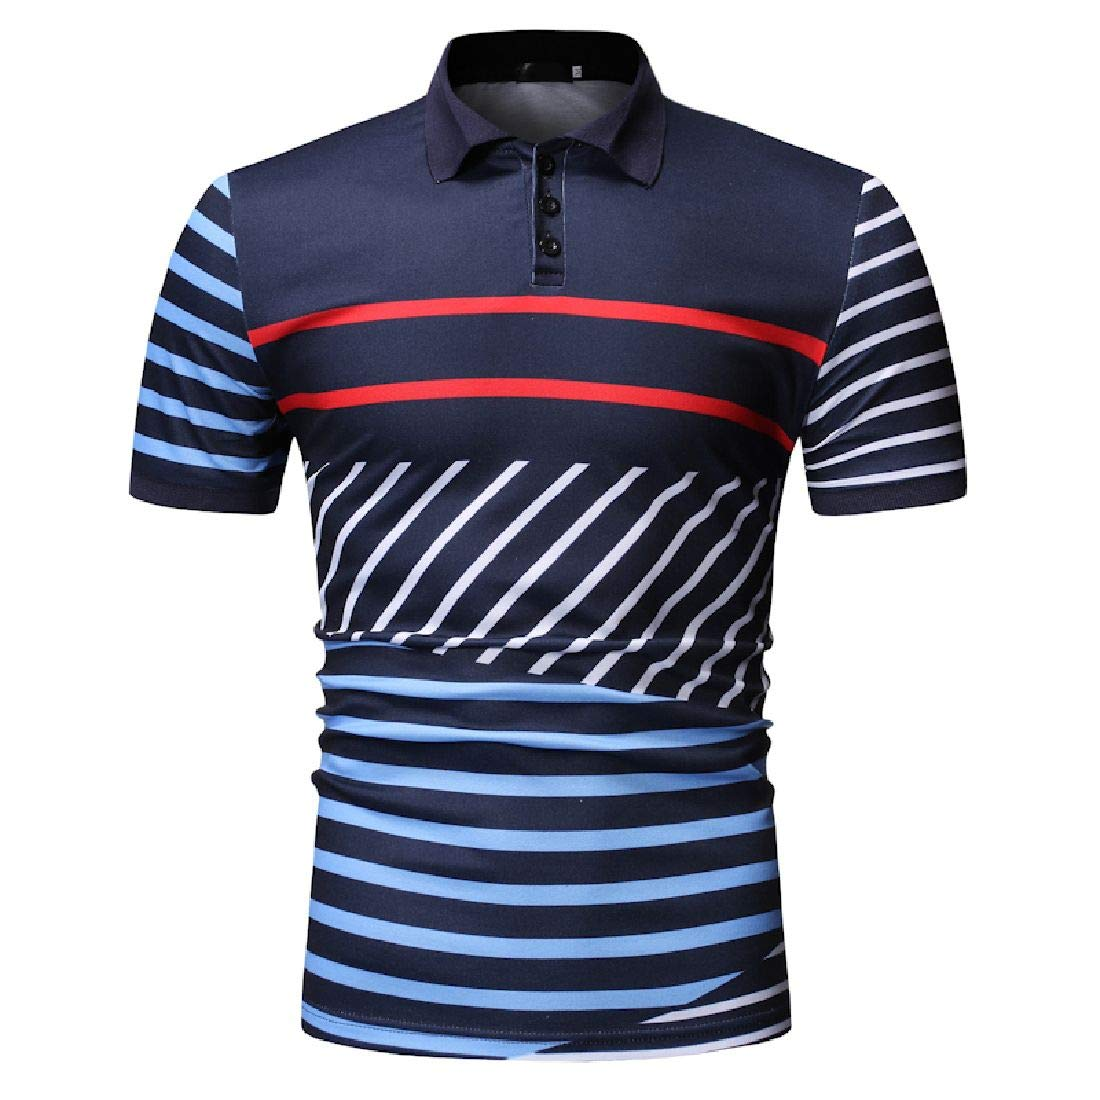 Domple Men Casual Summer Color Blocks Business Striped Short Sleeve Polo Shirt